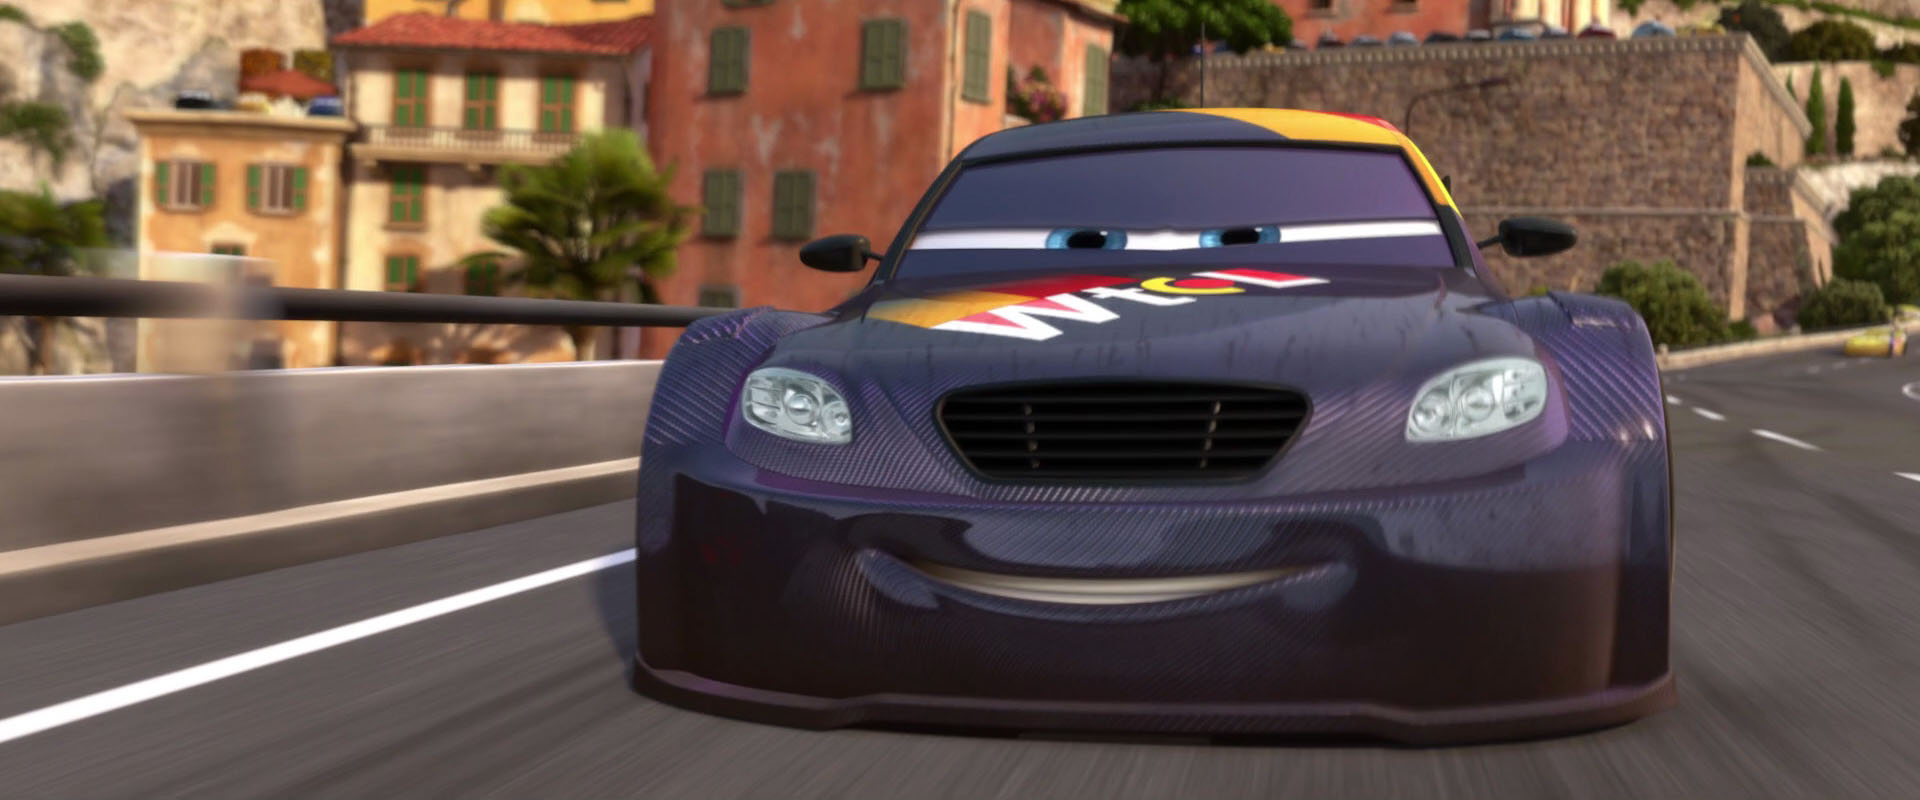 max-schnell-personnage-cars-2-01